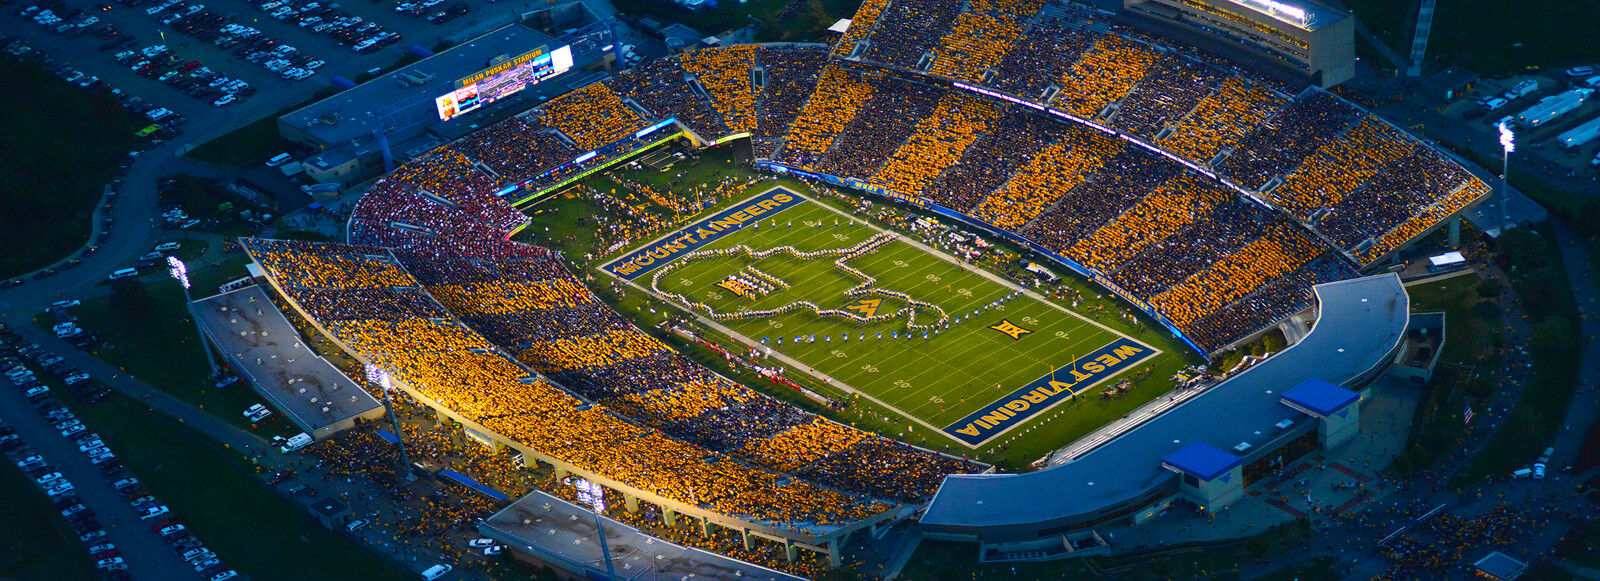 2017 West Virginia Mountaineers Football Season Tickets - Season Package (Includes Tickets for all Home Games)